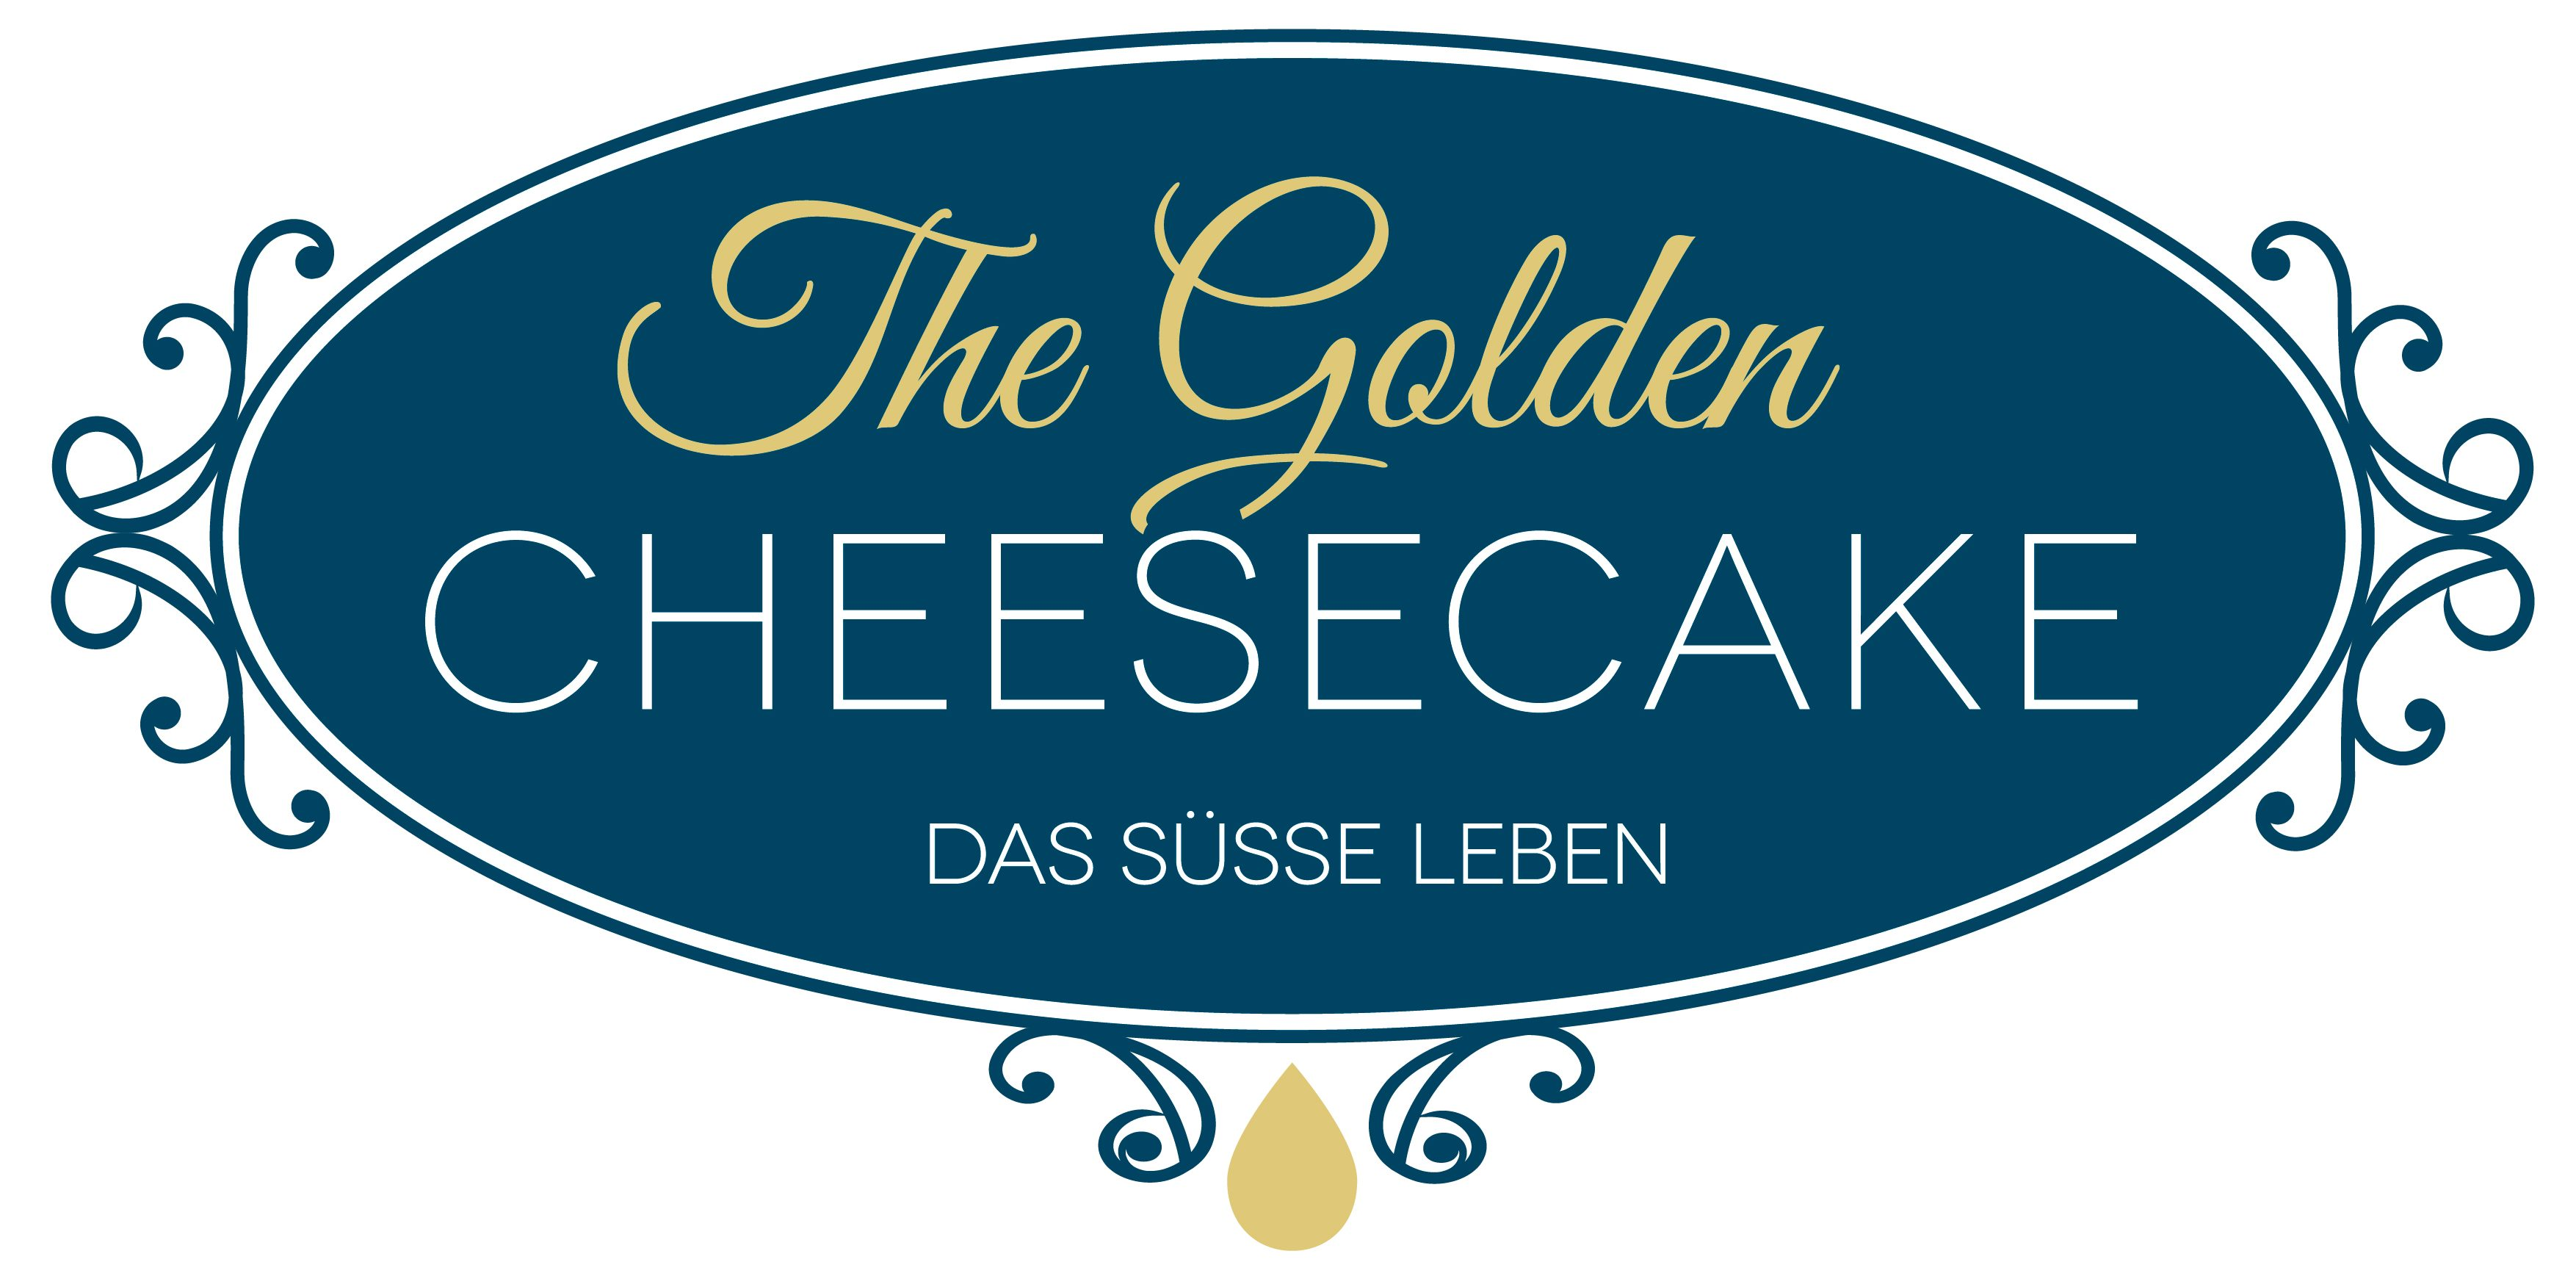 The Golden Cheesecake